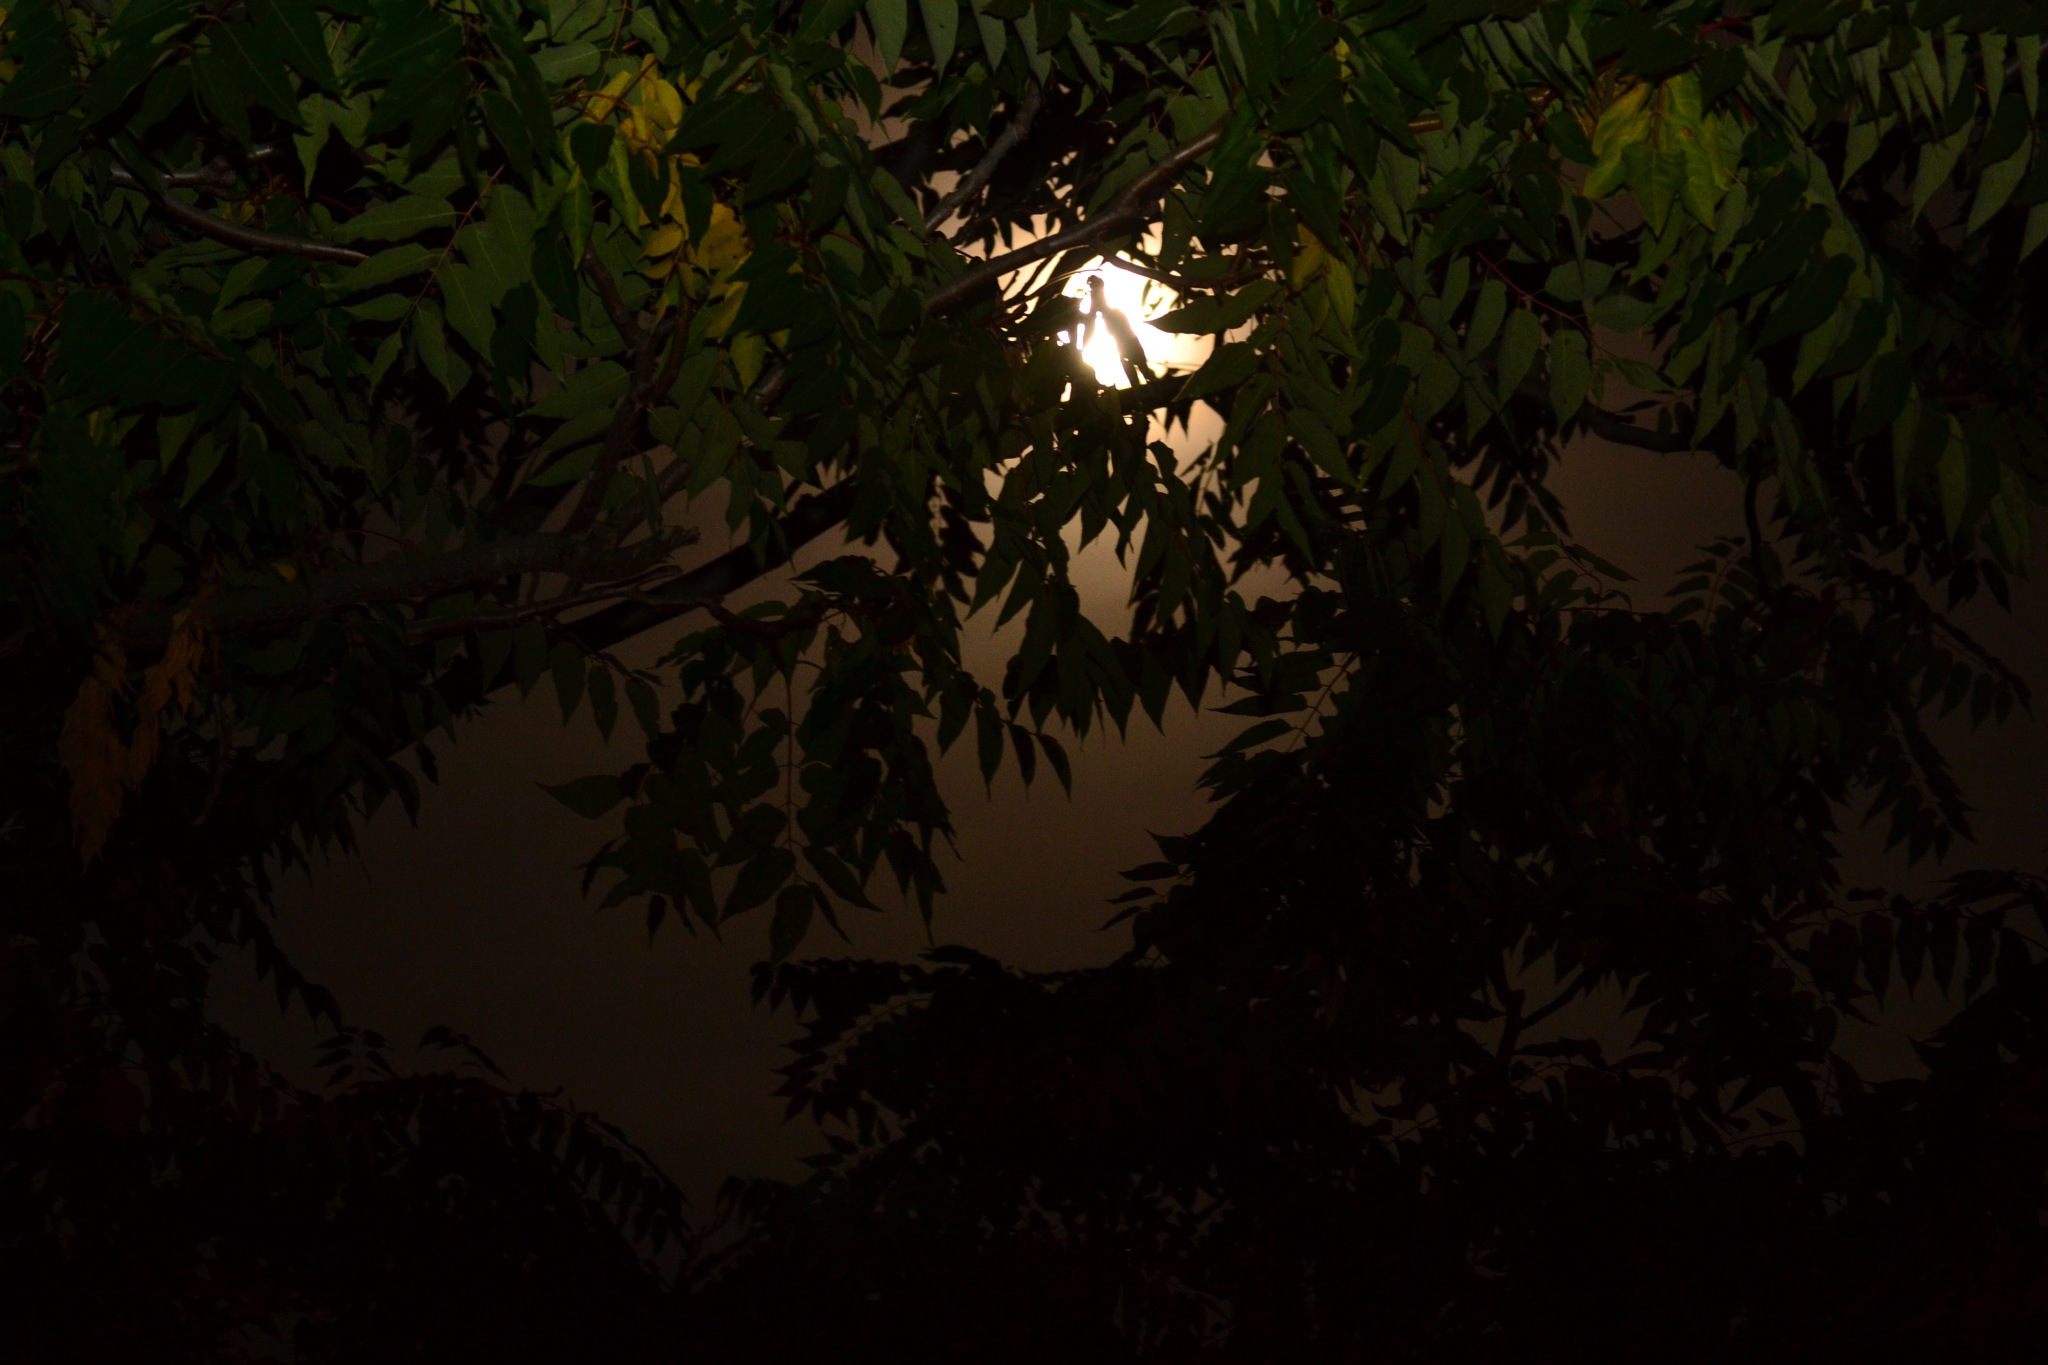 Moon thru the trees. by Smitty1960